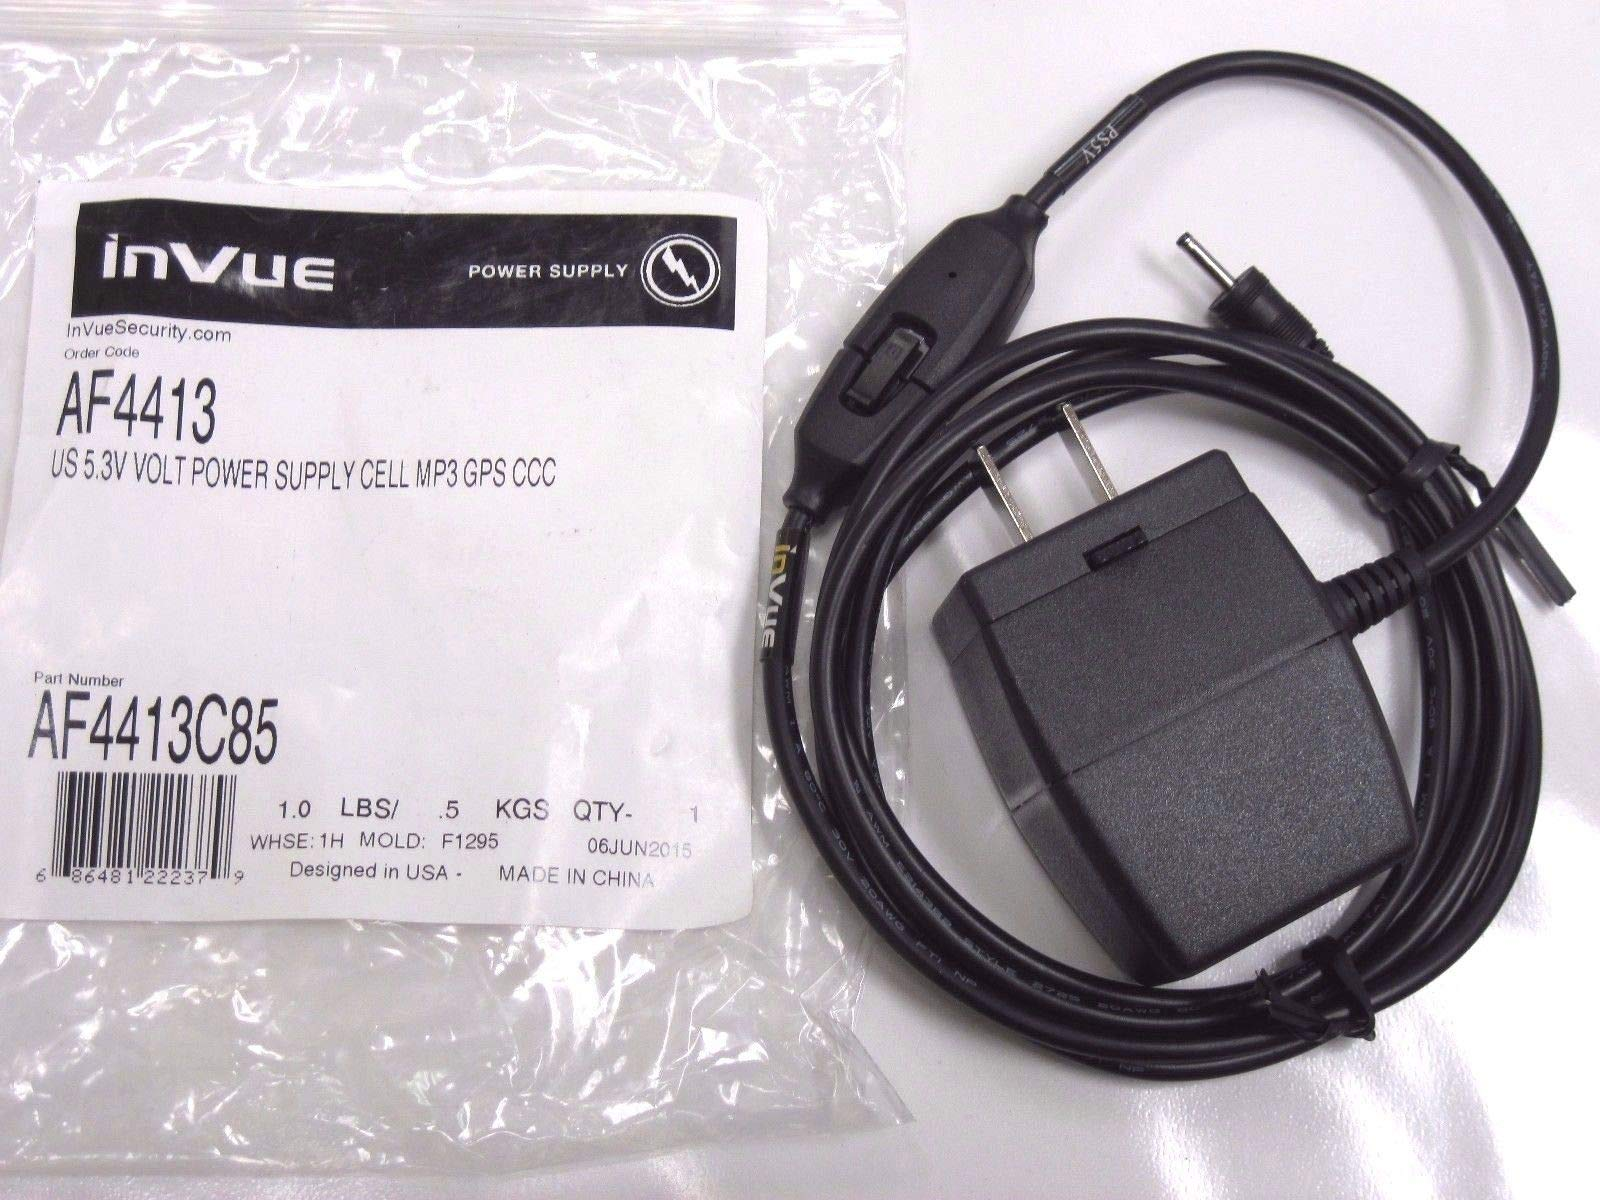 Brand New InVue US 5.3V Volt AF4413 Power Supply Cell MP3 GPS CCC Charger F1295